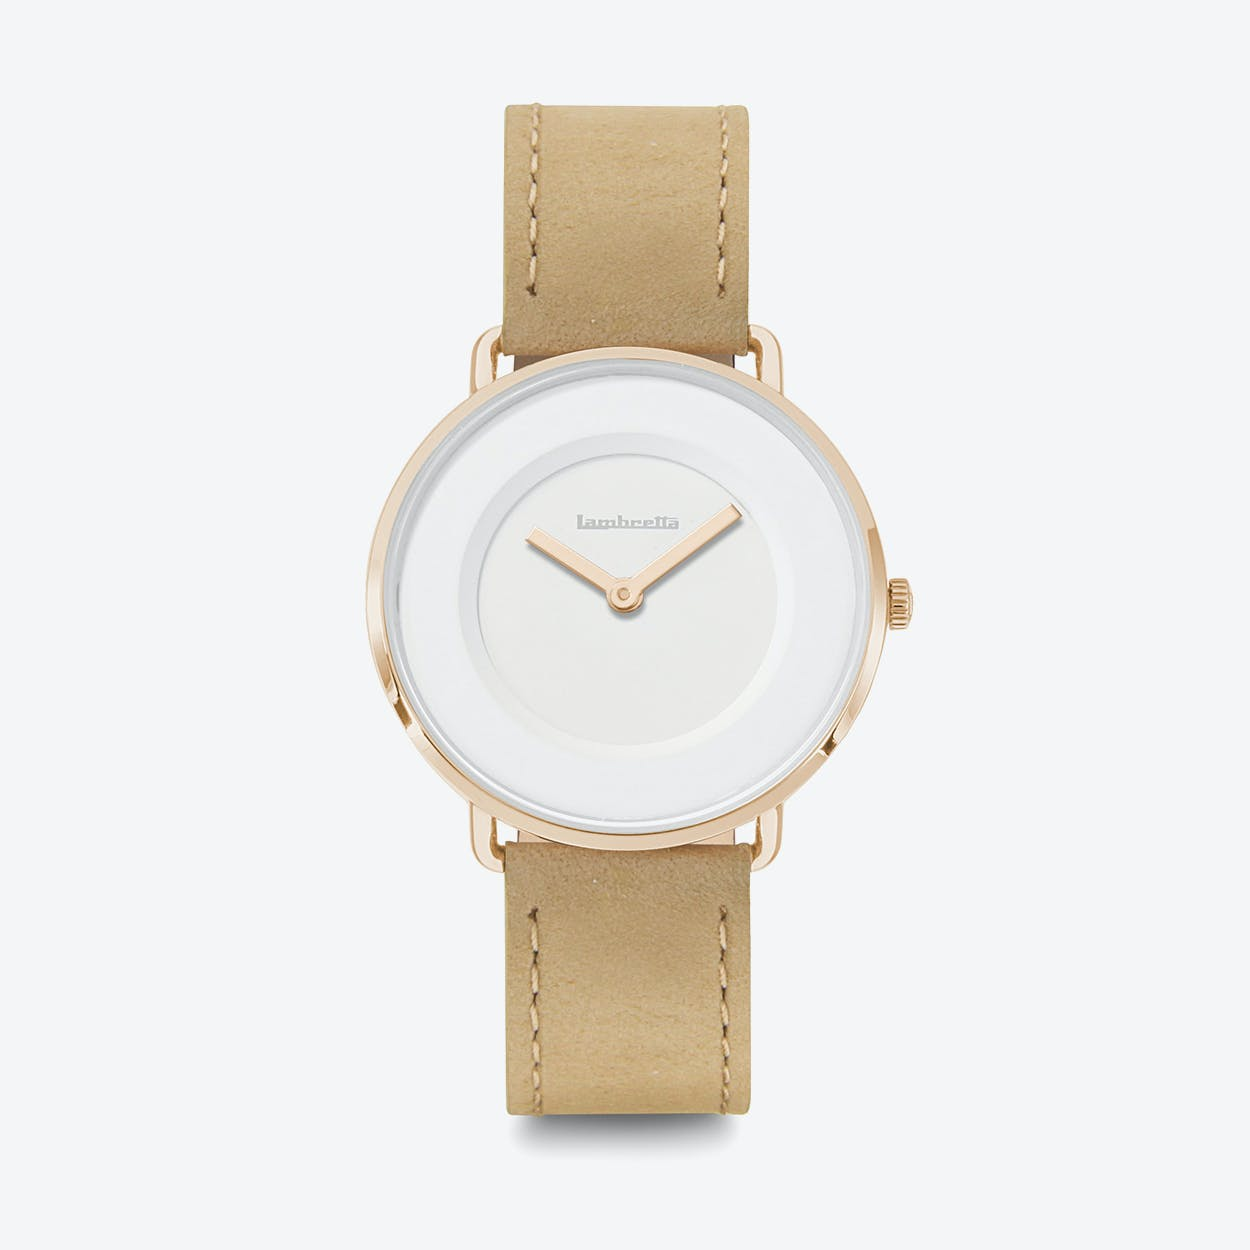 Mia 34 Watch in Rose Gold w/ Beige Leather Strap & White Face